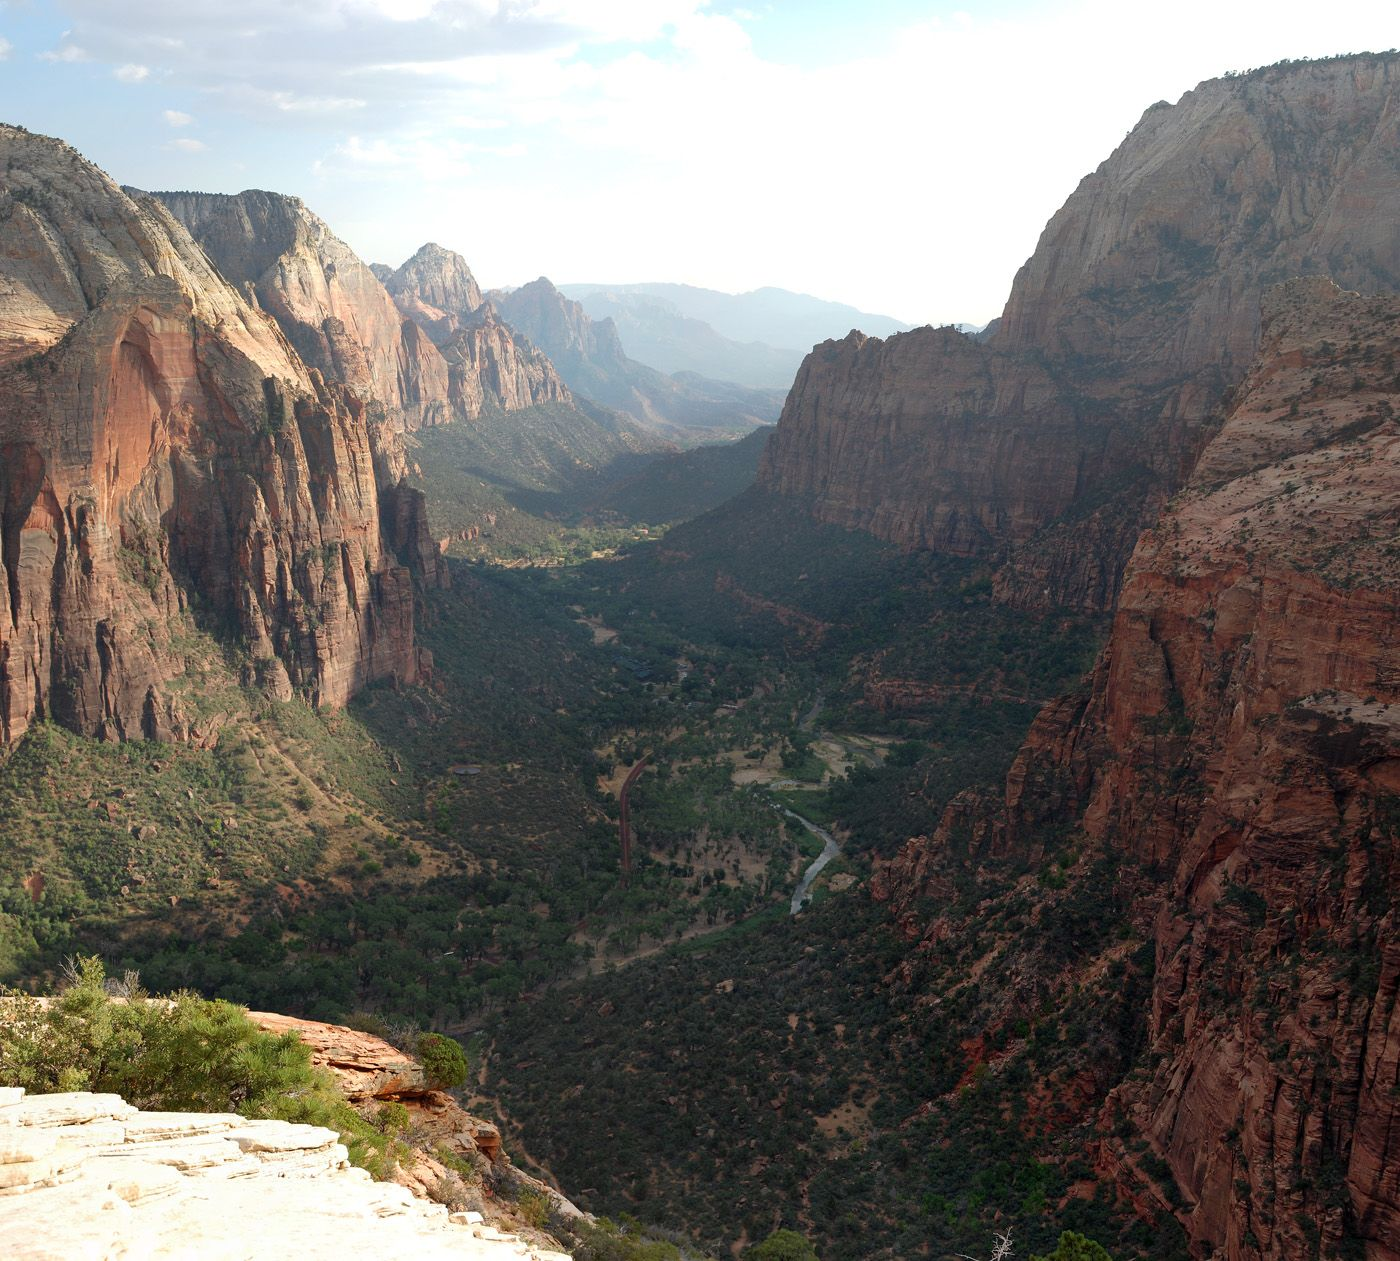 Mike Specian's Zion Canyon From Atop Angels Landing